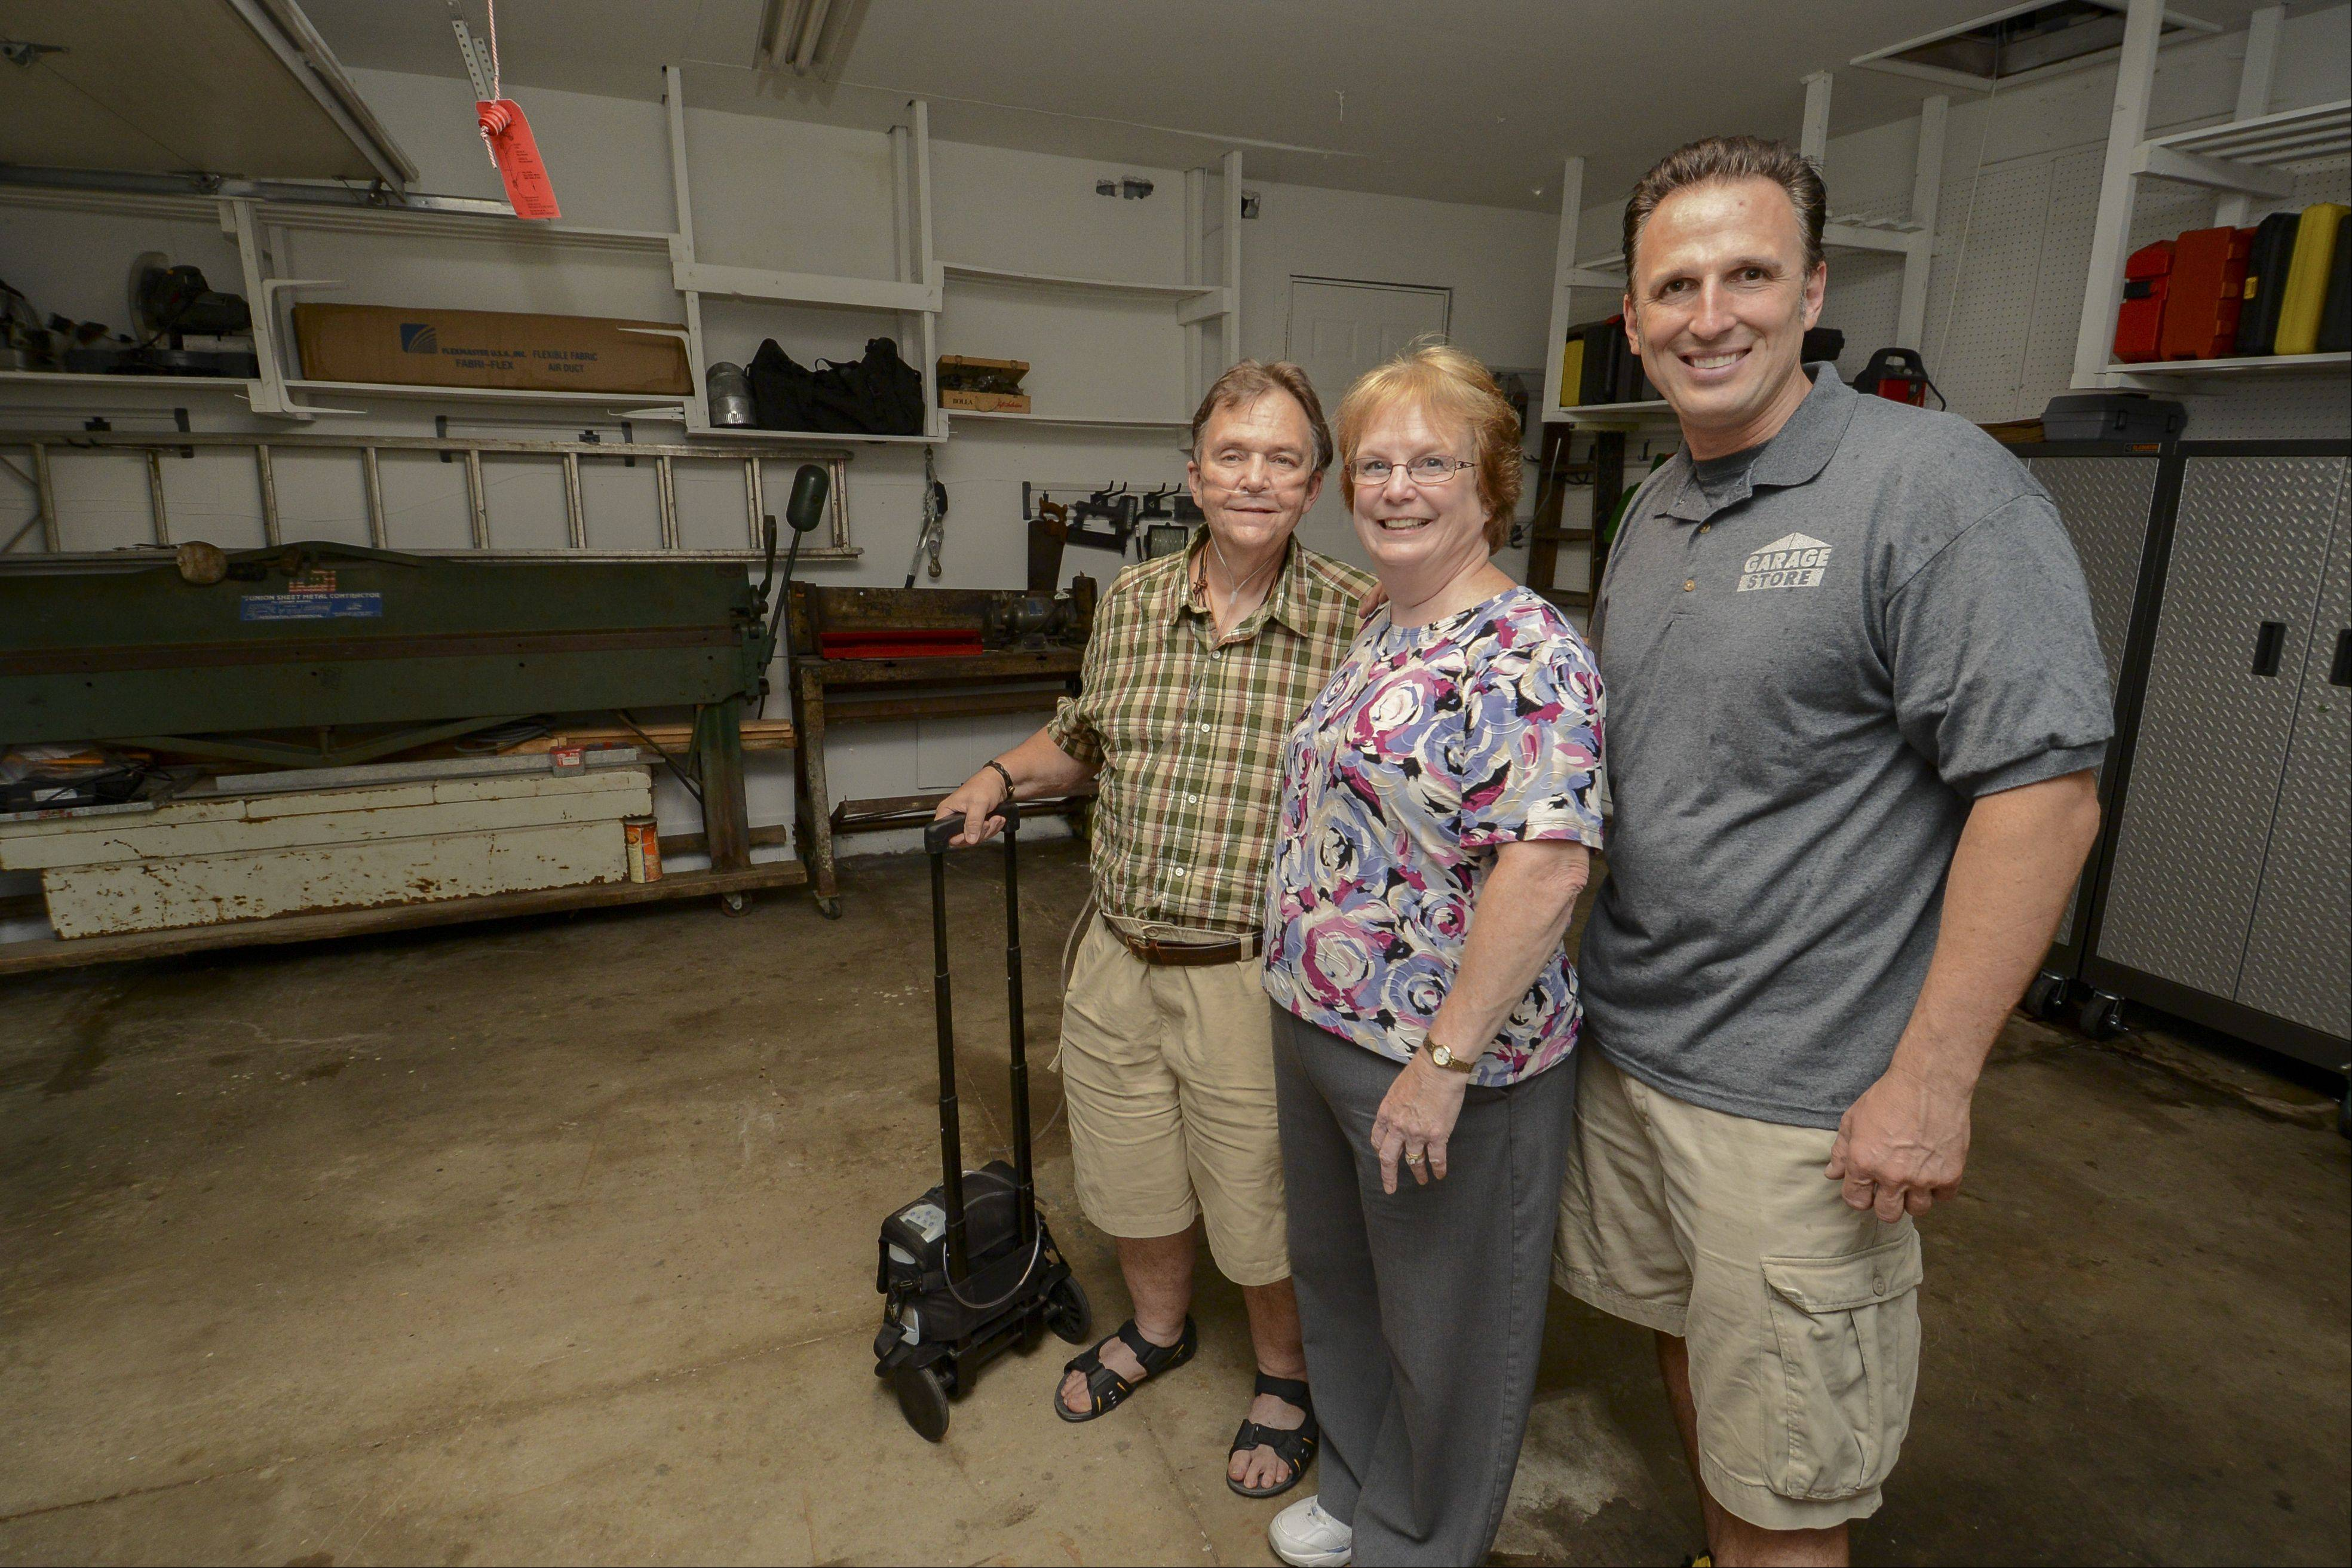 Bob and Dianne DeBellis of Roselle the winners of a garage make over with Jim Melchert of the Garage Store.